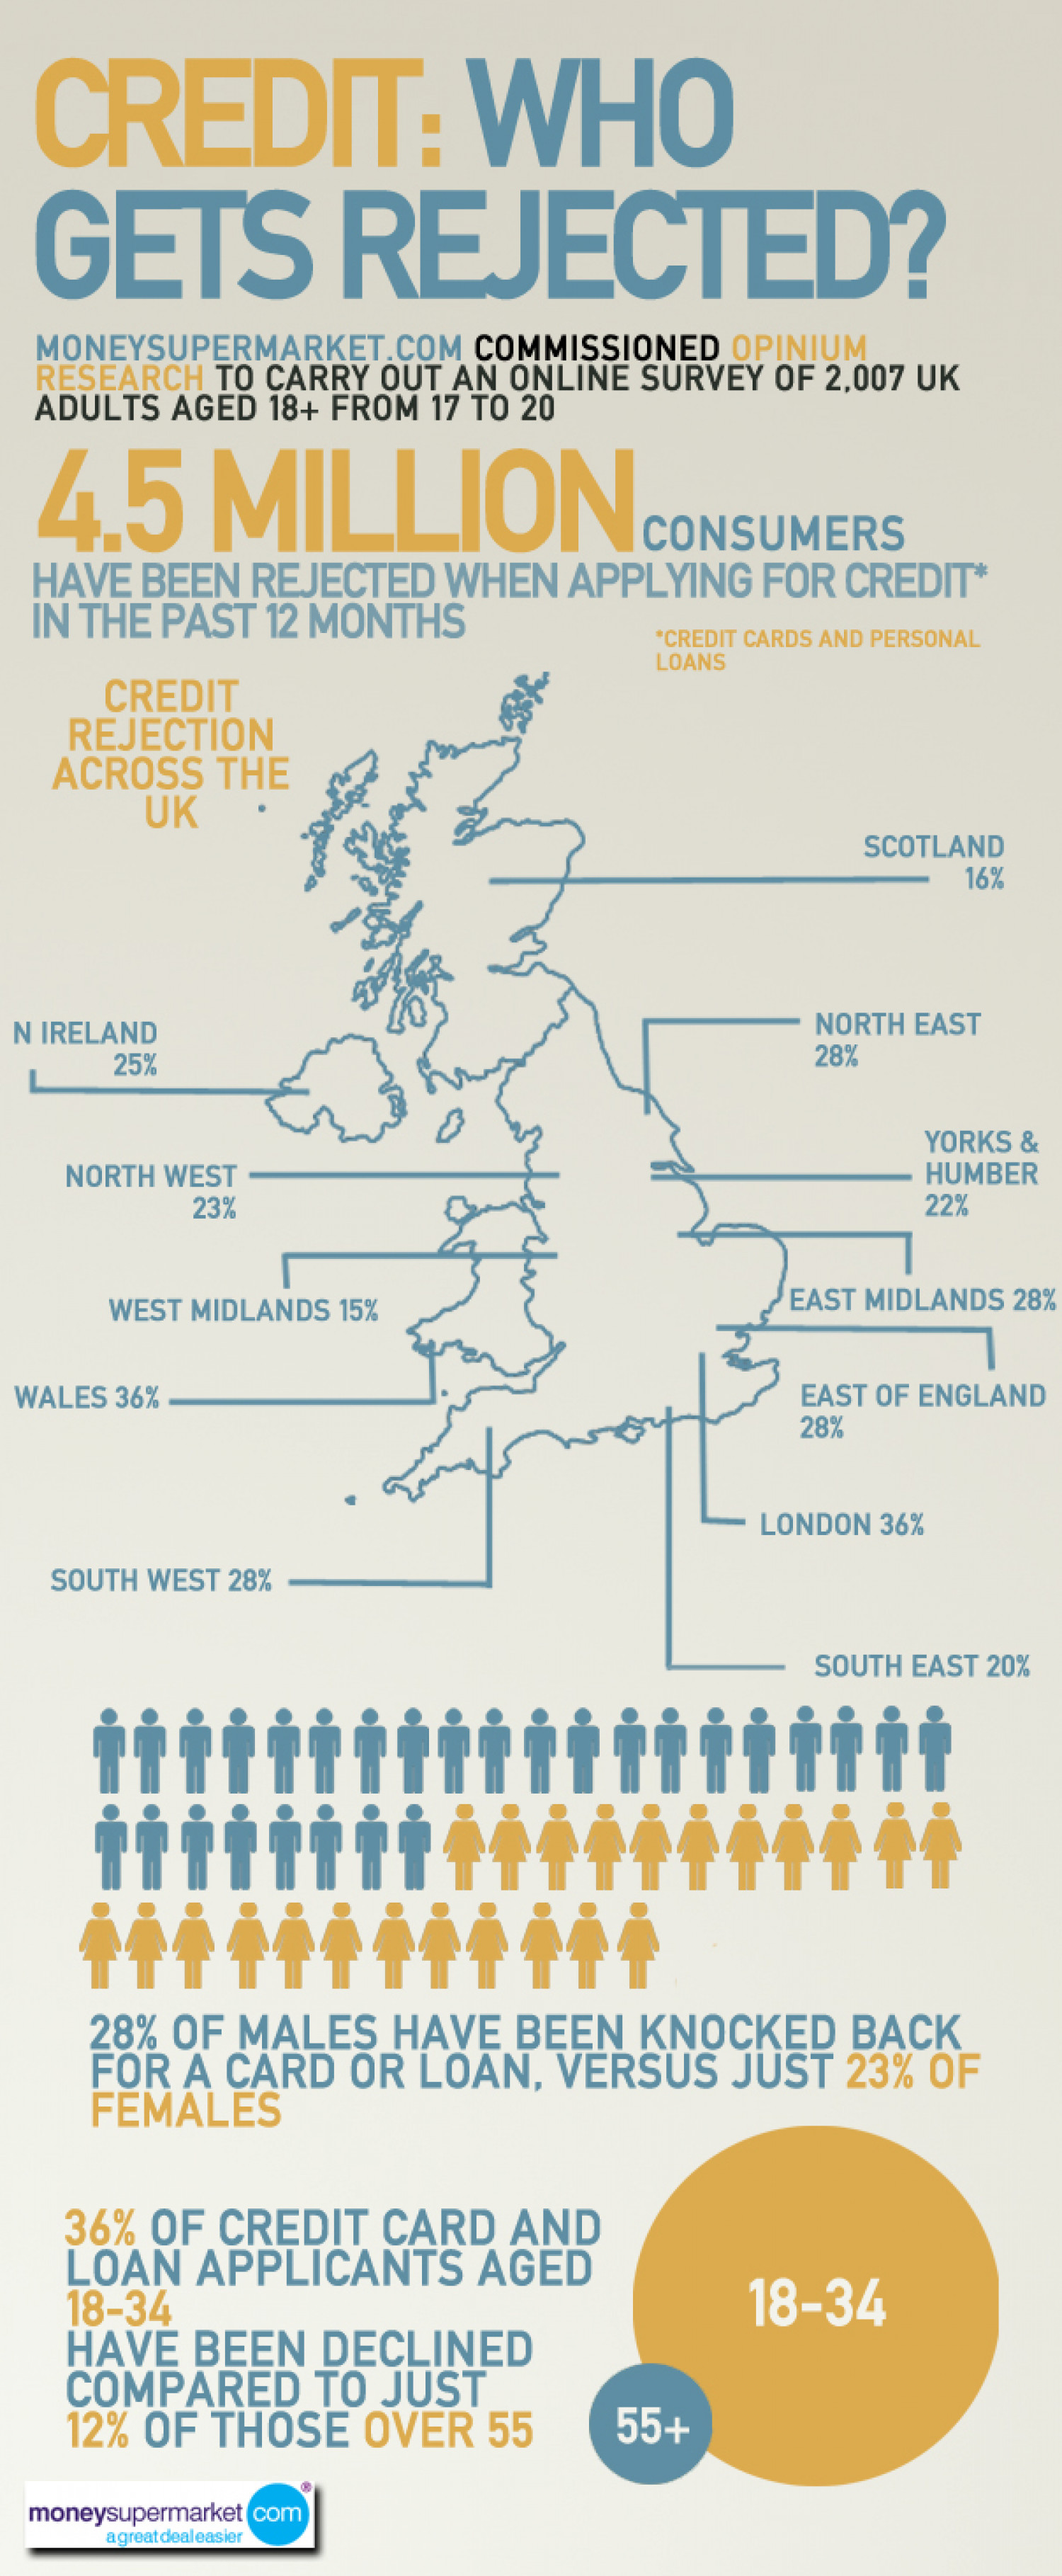 UK Credit:  Who Gets Rejected? Infographic